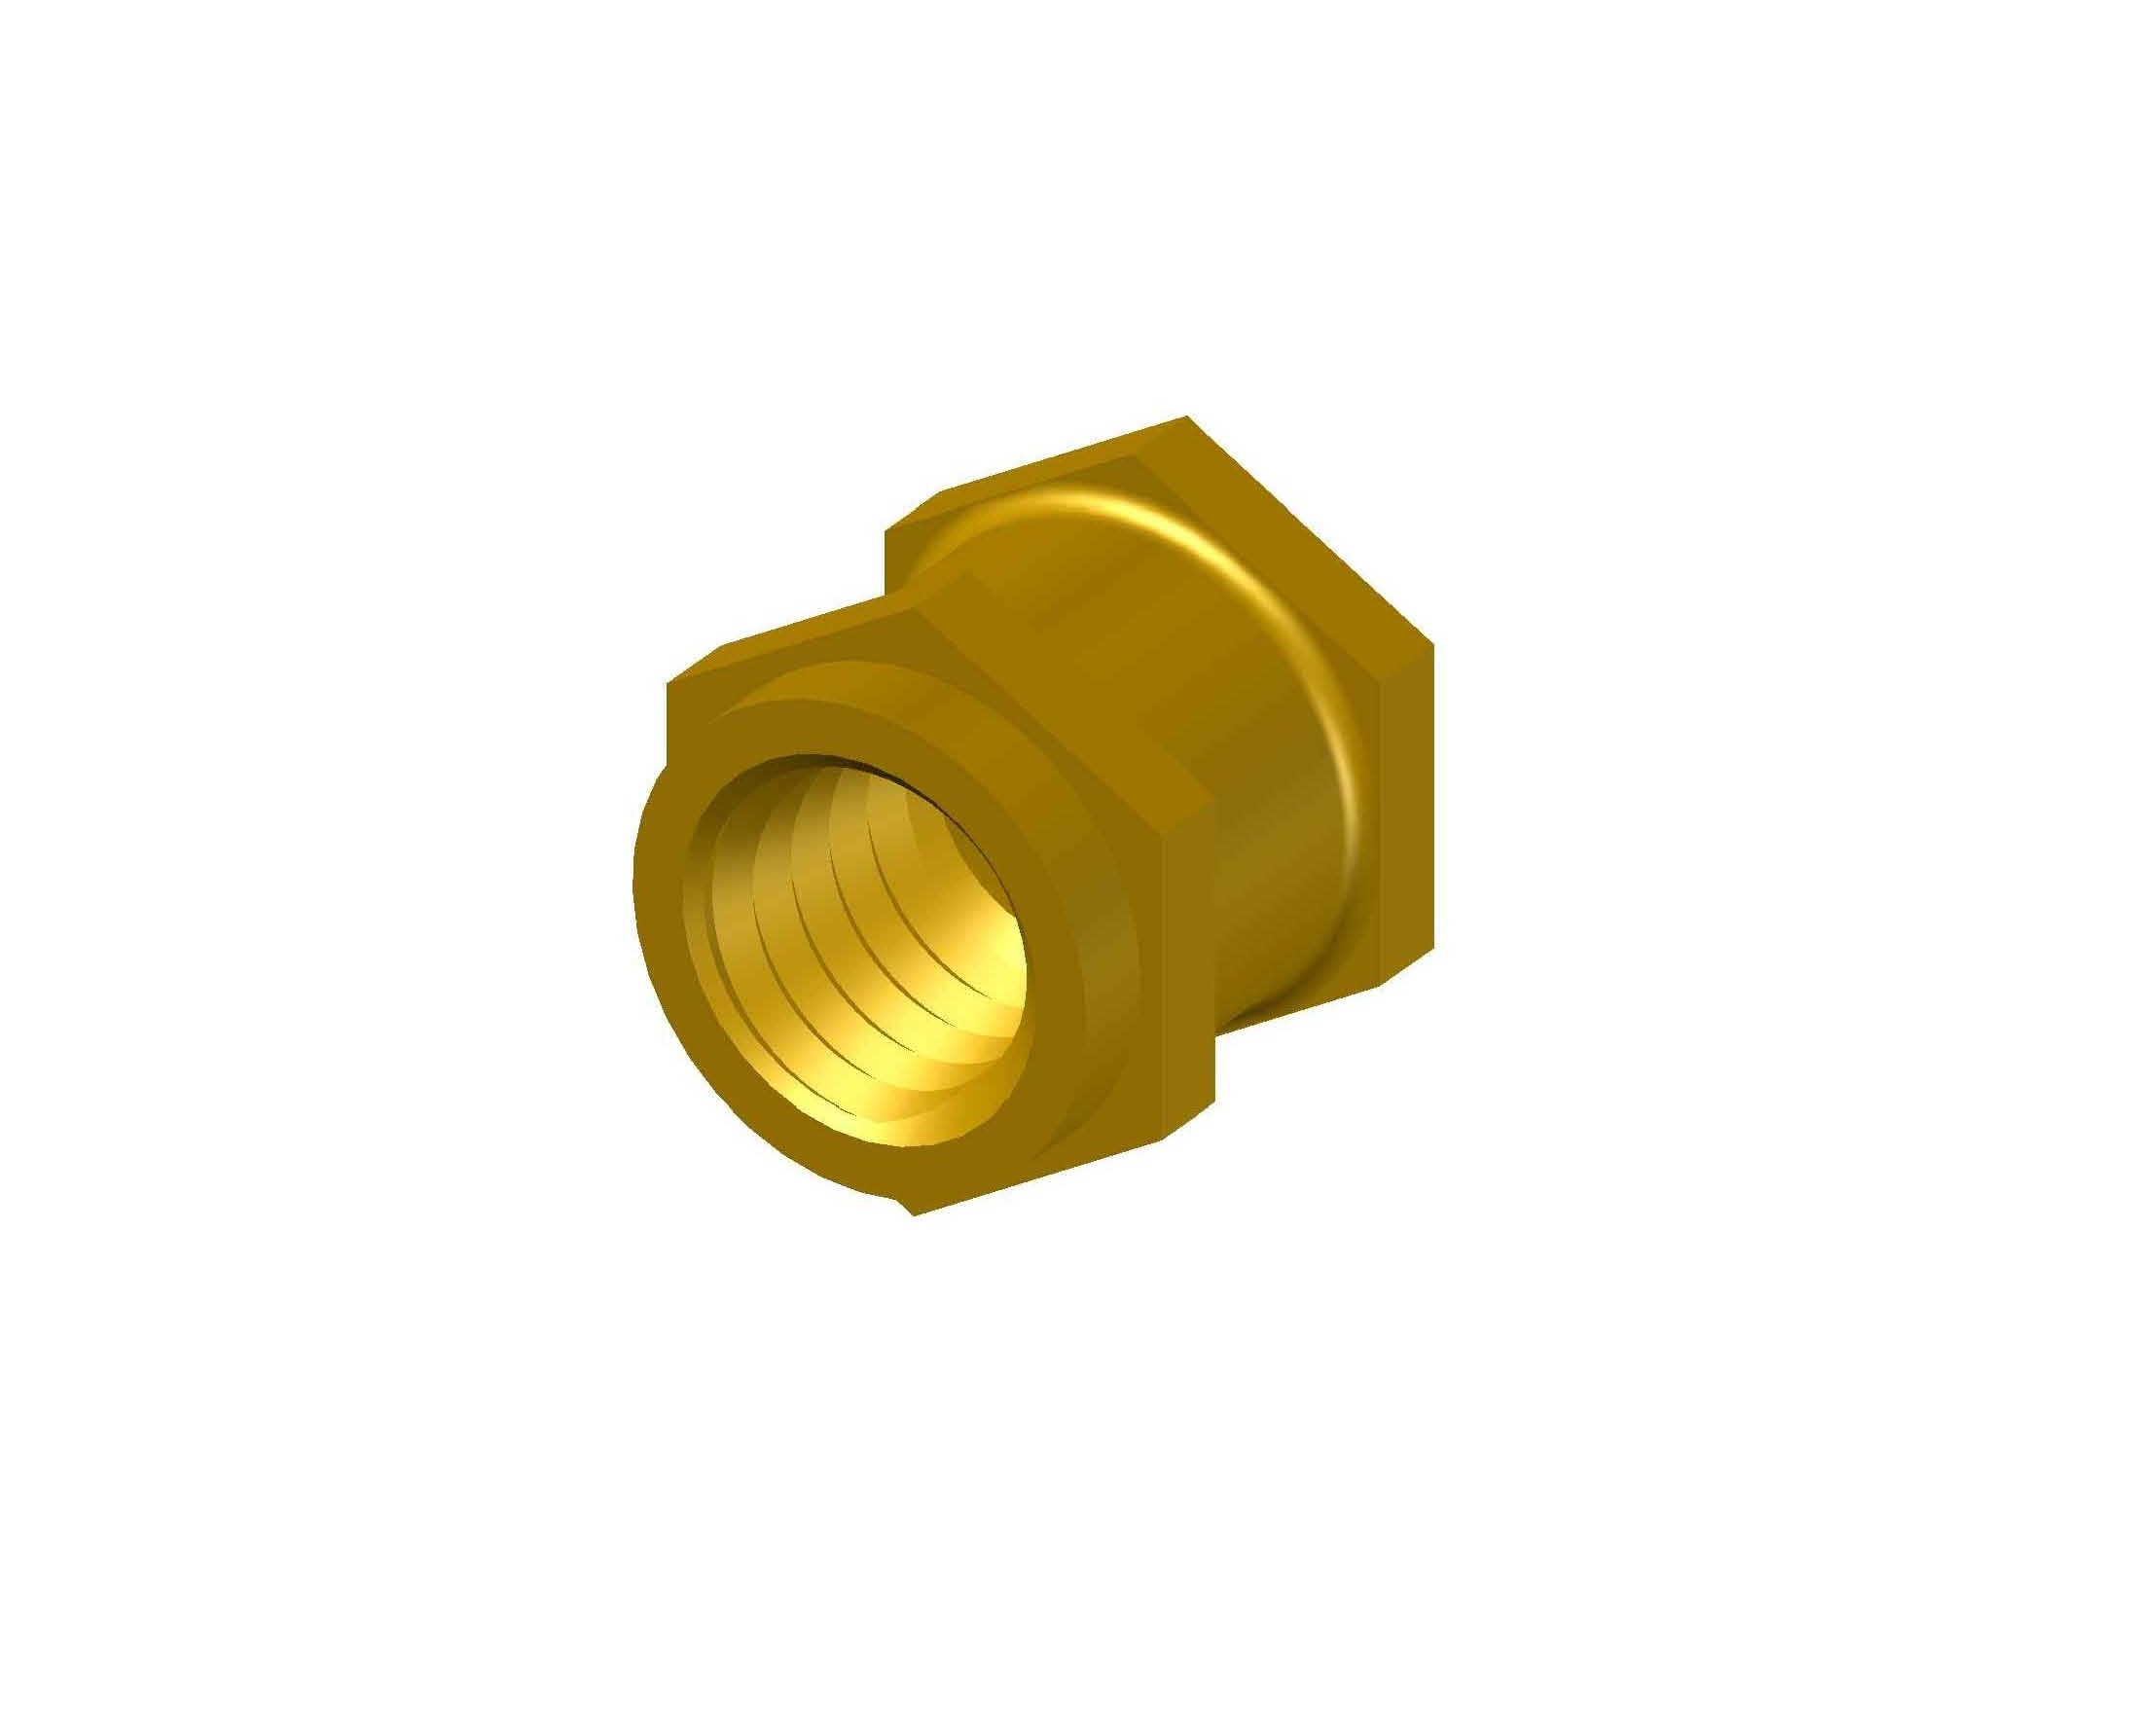 Brass Hexagonal Insert